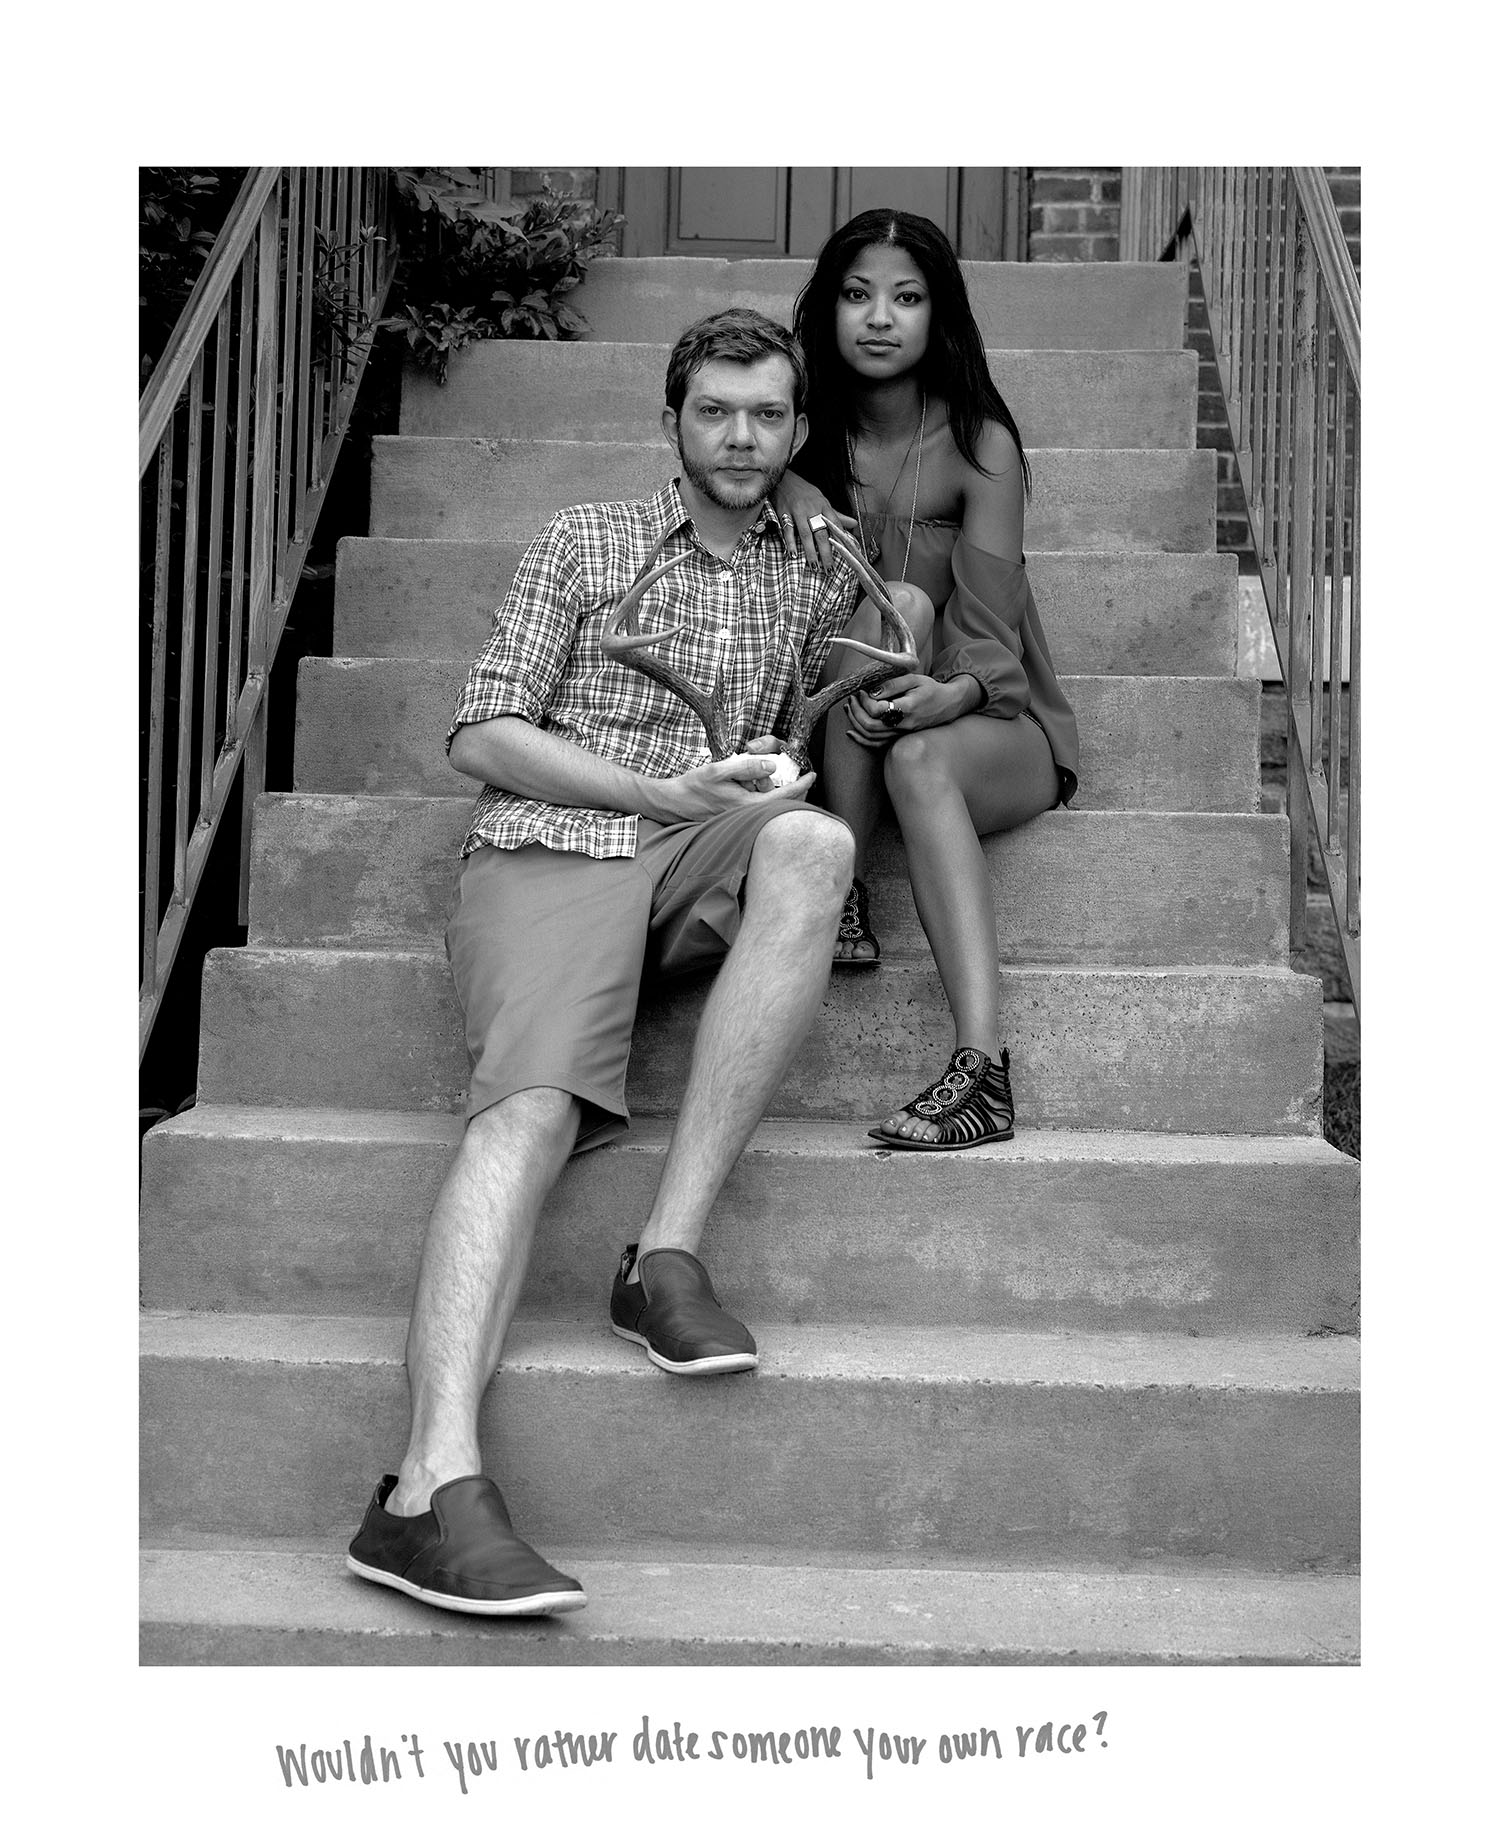 Wouldn't you rather date someone your own race? (2014)